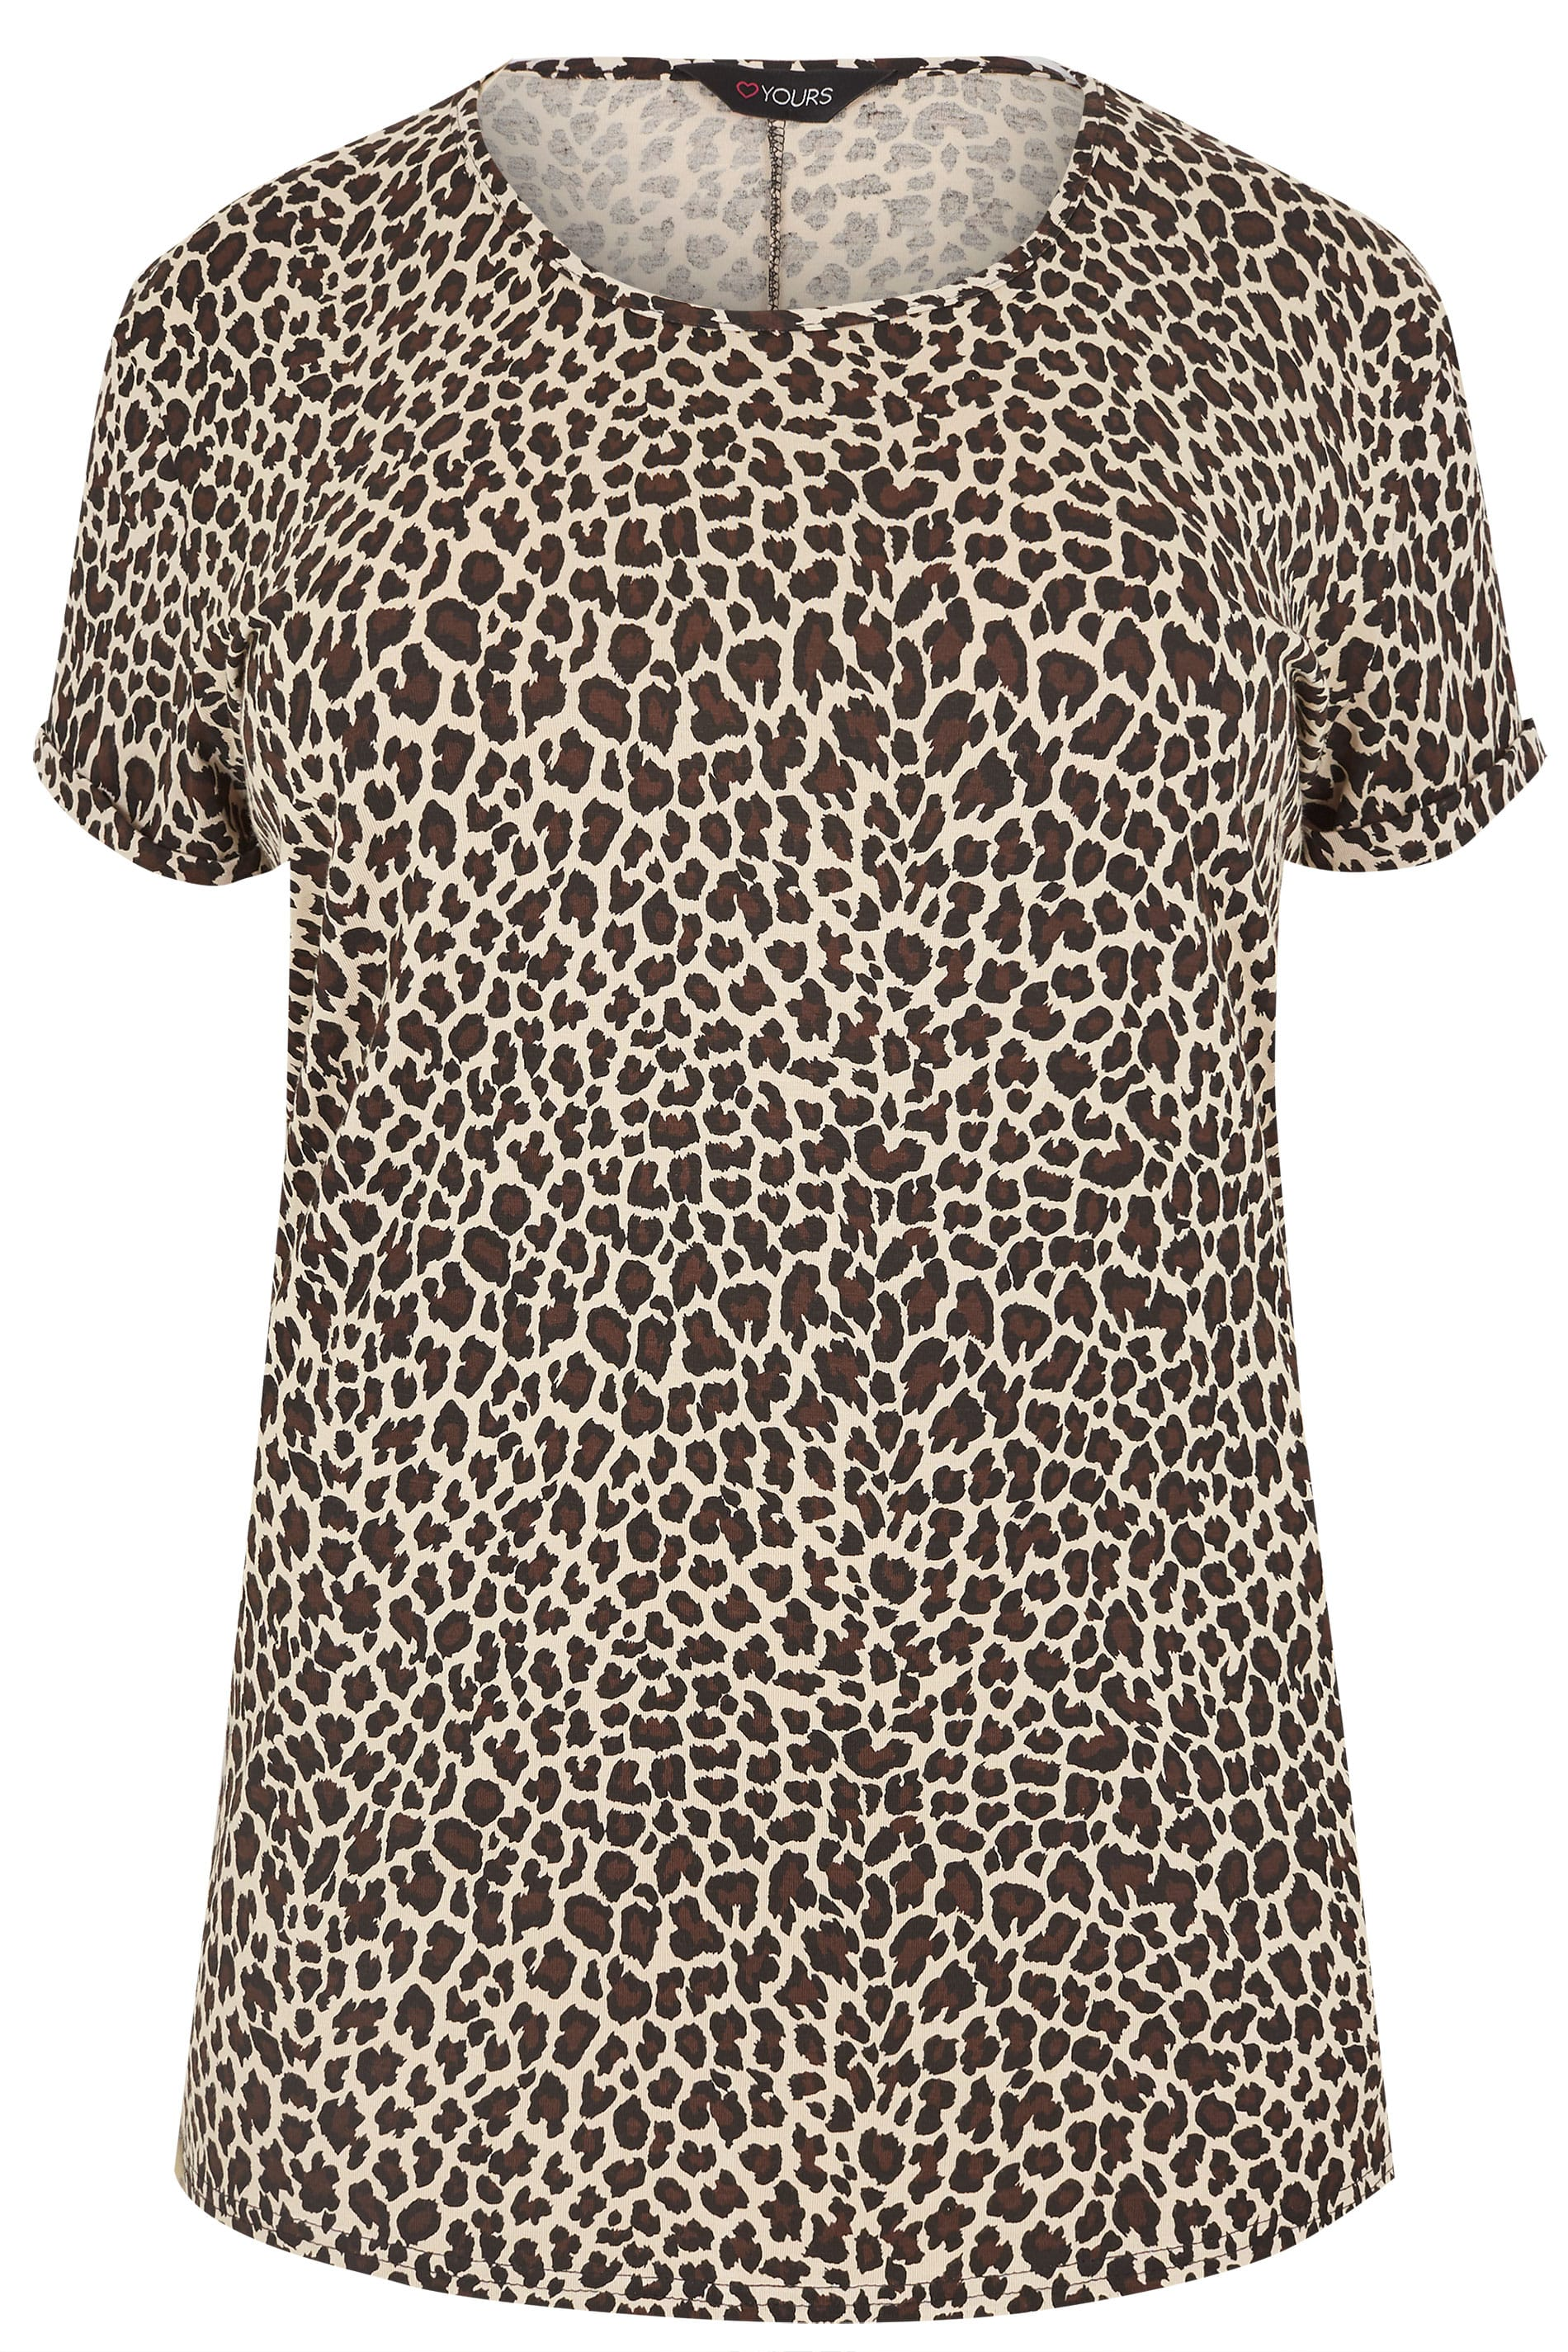 b463e1daebf5 Leopard Print T-Shirt. ‹ › Loading. Catwalk Video. Hover over the images  above to enlarge